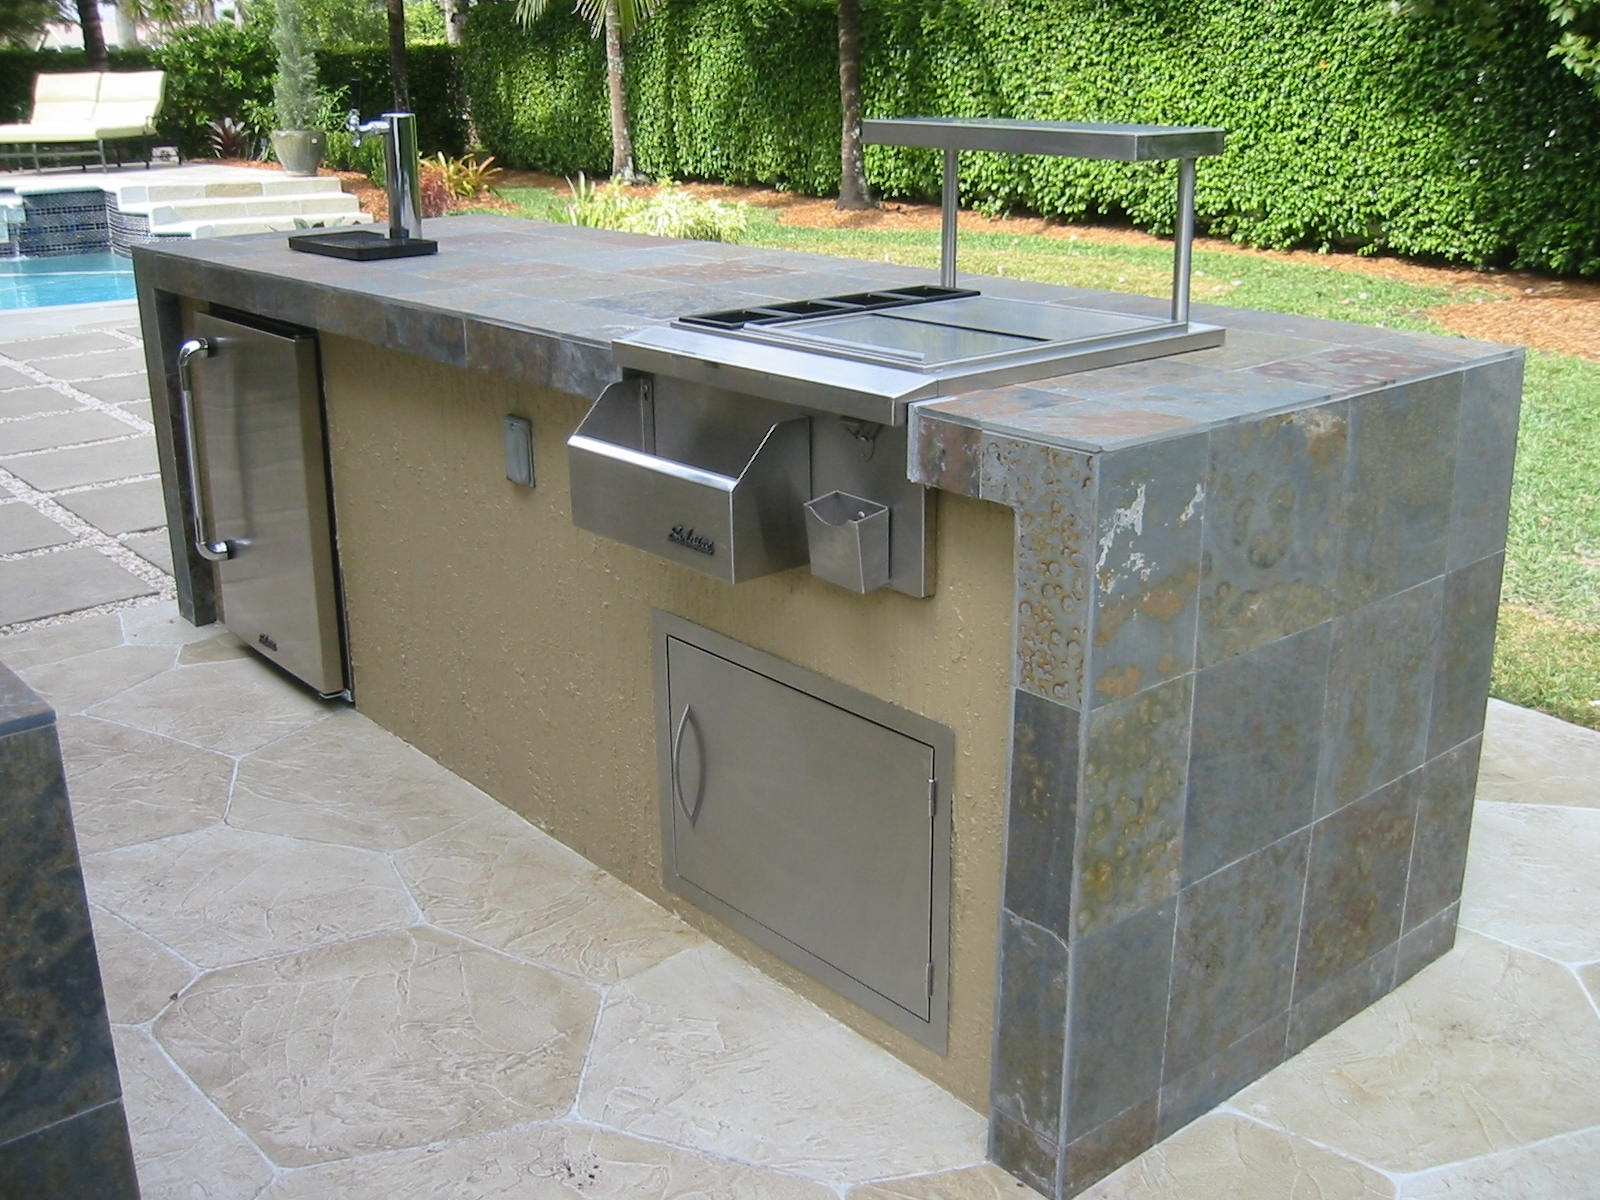 Kitchen Modular Outdoor Kitchens Outdoor Sinks For Bbq Bbq Kits Within Bbq Outdoor Kitchens Bbq Outdoor Kitchens For Perfect Time